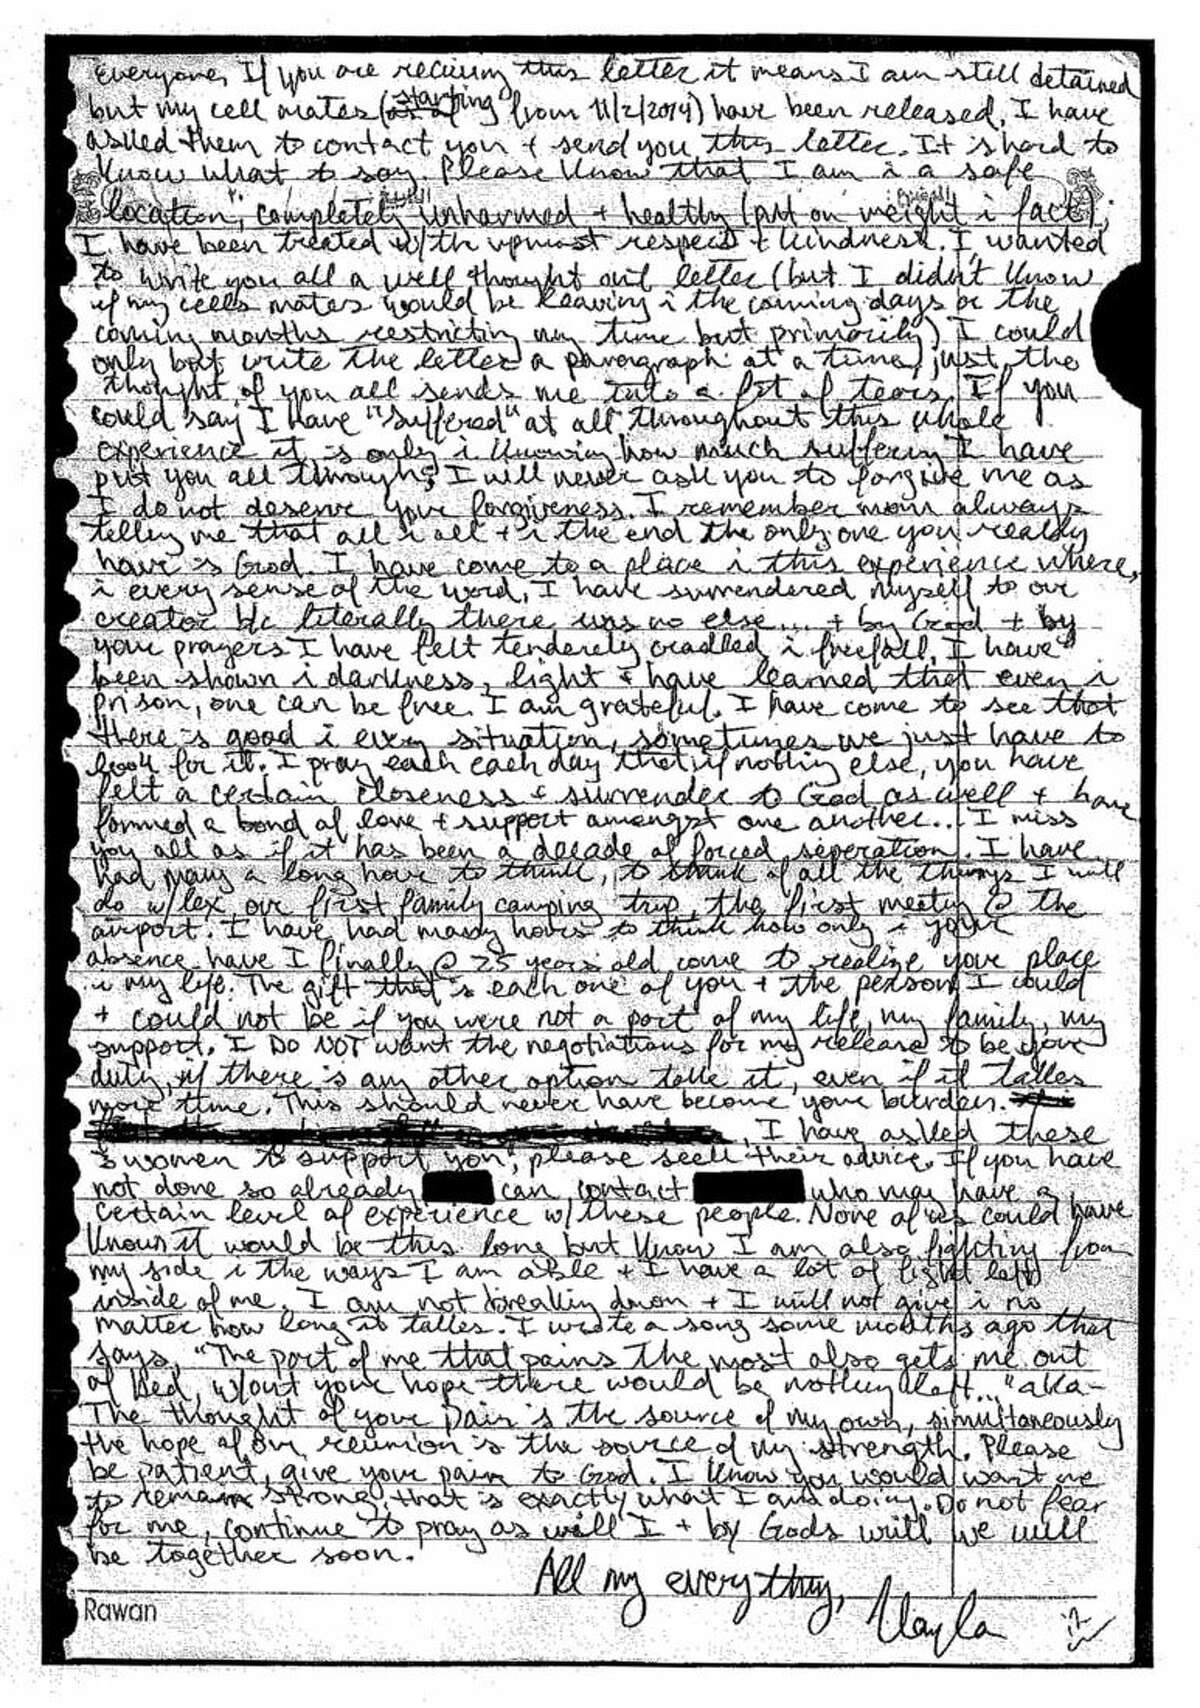 This image provided by the Mueller family shows a photocopy of a letter the family says was written to them by Kayla Jean Mueller in spring 2014. The family said Tuesday, Feb. 10, 2015, it had received confirmation that Mueller died while being held by Islamic State militants. (AP Photo/Courtesy of the Mueller family)